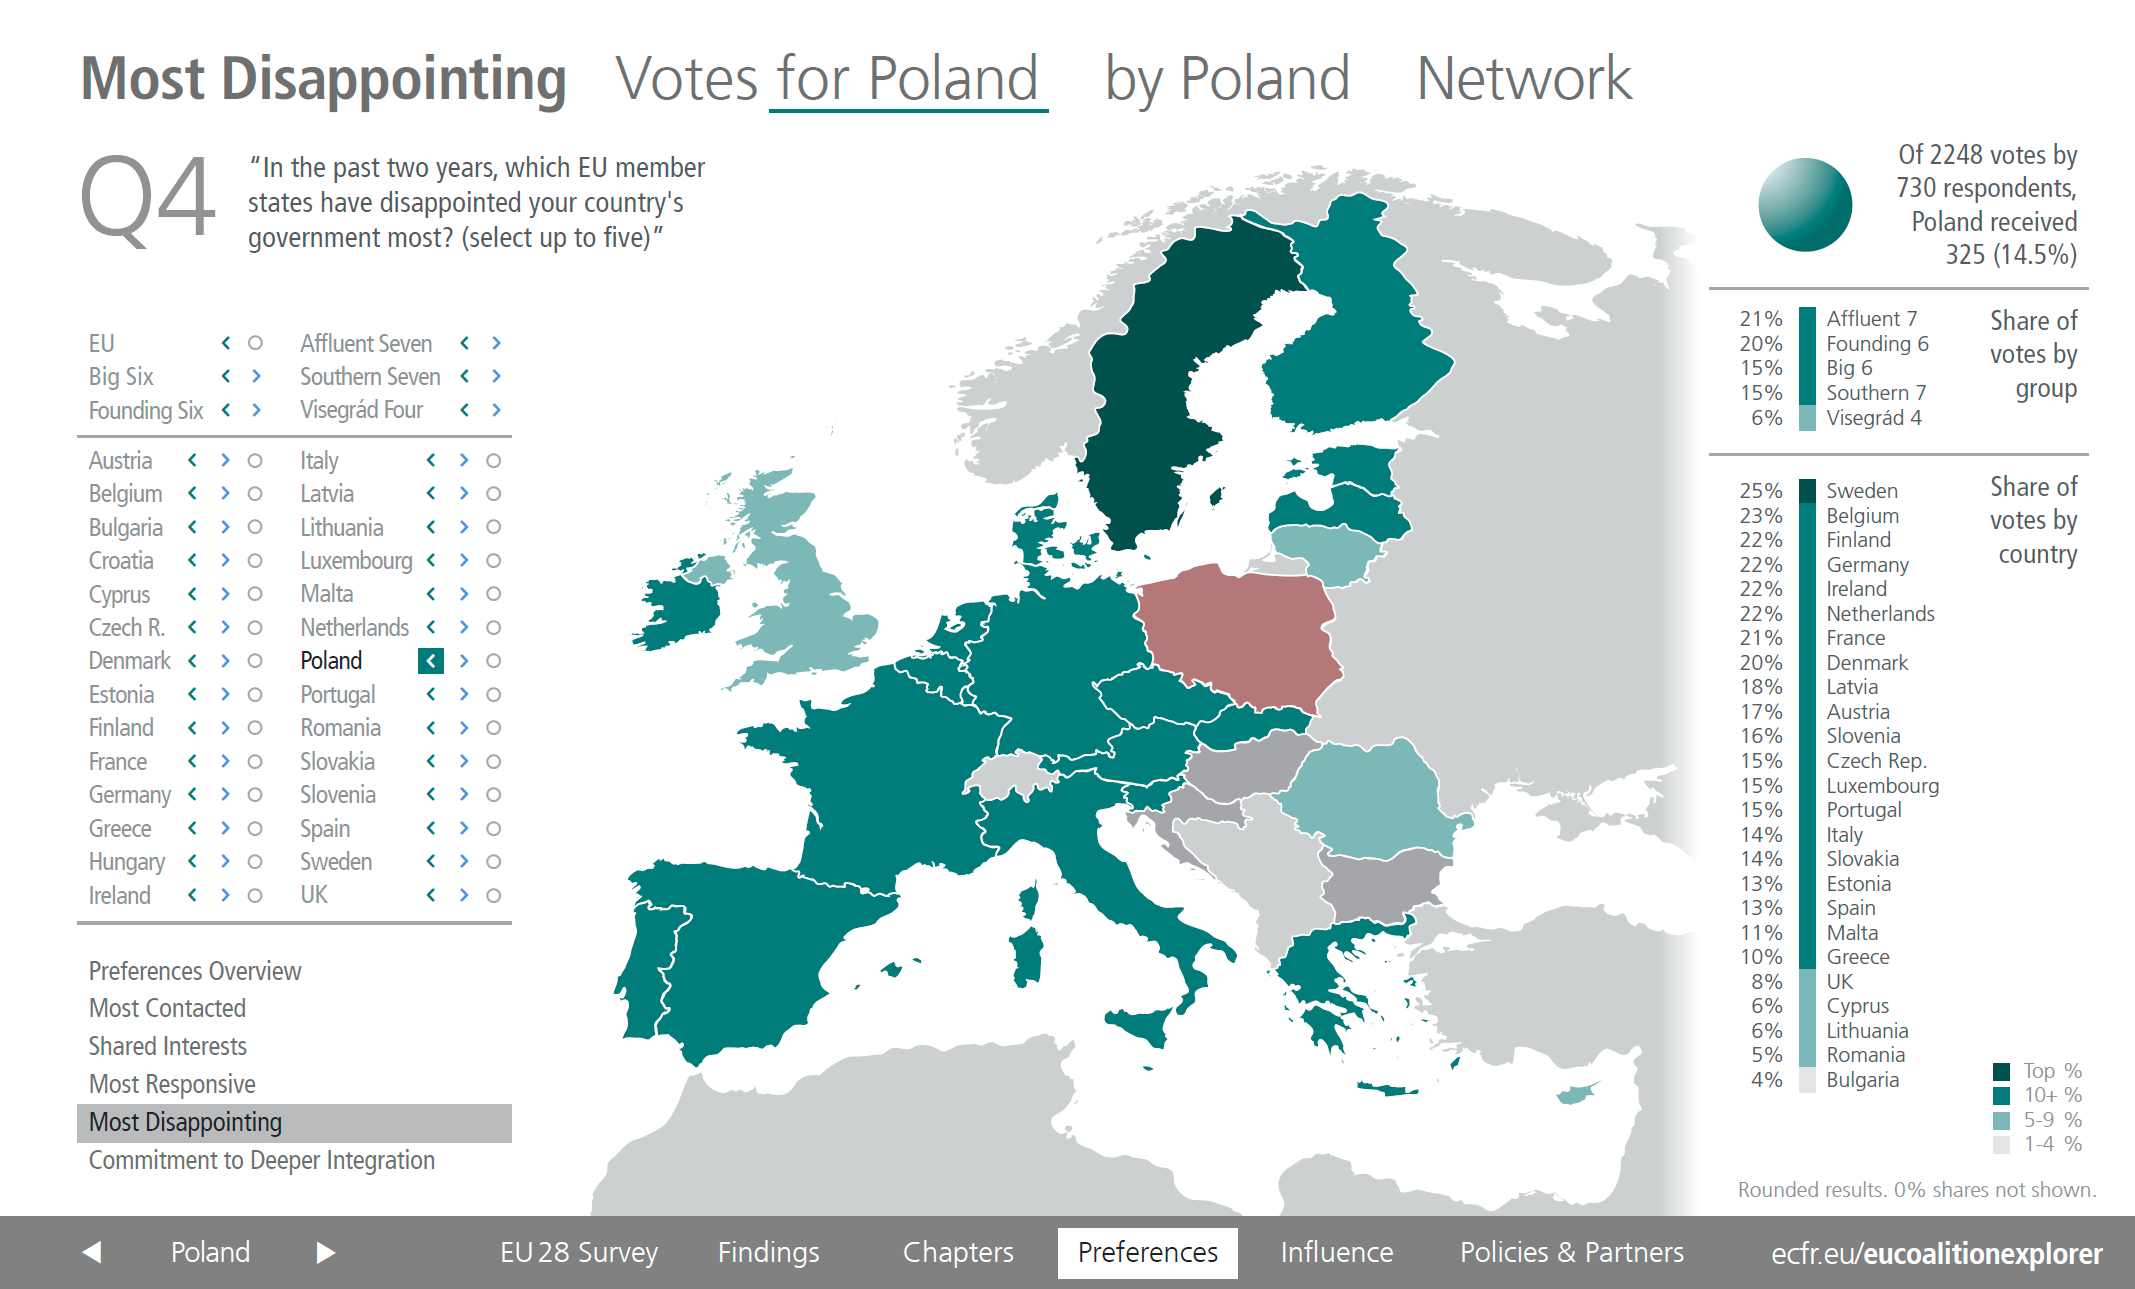 Most Disappointing - votes for Poland